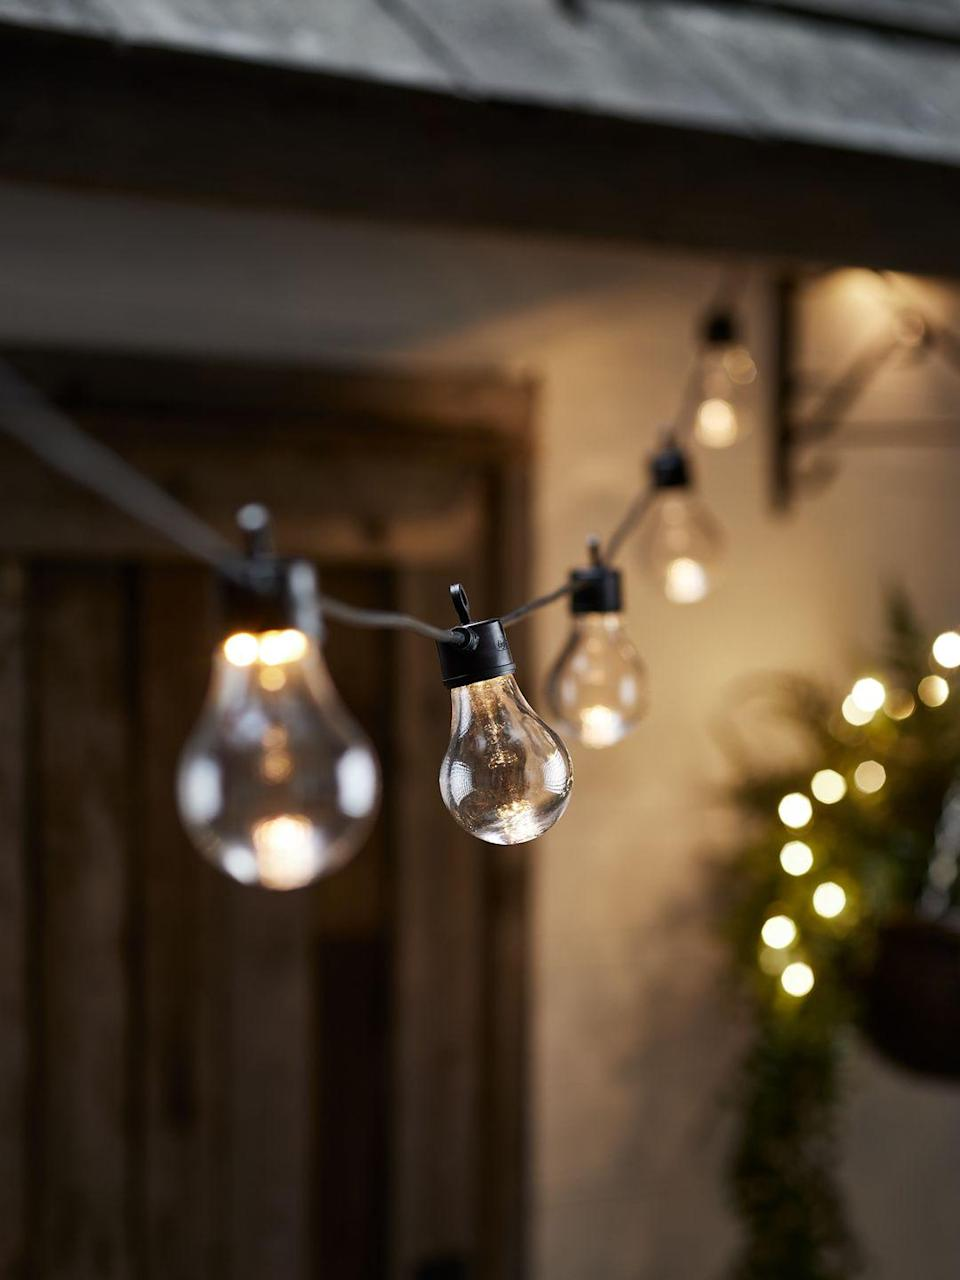 """<p>Create an ambient glow in your <a href=""""https://www.housebeautiful.com/uk/garden/a36163508/garden-lighting-ideas/"""" rel=""""nofollow noopener"""" target=""""_blank"""" data-ylk=""""slk:garden"""" class=""""link rapid-noclick-resp"""">garden</a> this summer by hanging a string of festoon lights. Perfect for letting your outdoor space take shape, they can either be strung along a fence, secured with a festoon light pole or hung from one end of the garden to the other. Warm, summer days we're ready for you!</p><p>Pictured: Warm festoon lights, £29.99, Lights4Fun</p><p><a class=""""link rapid-noclick-resp"""" href=""""https://www.housebeautiful.com/uk/garden/a36163508/garden-lighting-ideas/"""" rel=""""nofollow noopener"""" target=""""_blank"""" data-ylk=""""slk:READ MORE: GARDEN LIGHTING IDEAS"""">READ MORE: GARDEN LIGHTING IDEAS</a></p>"""